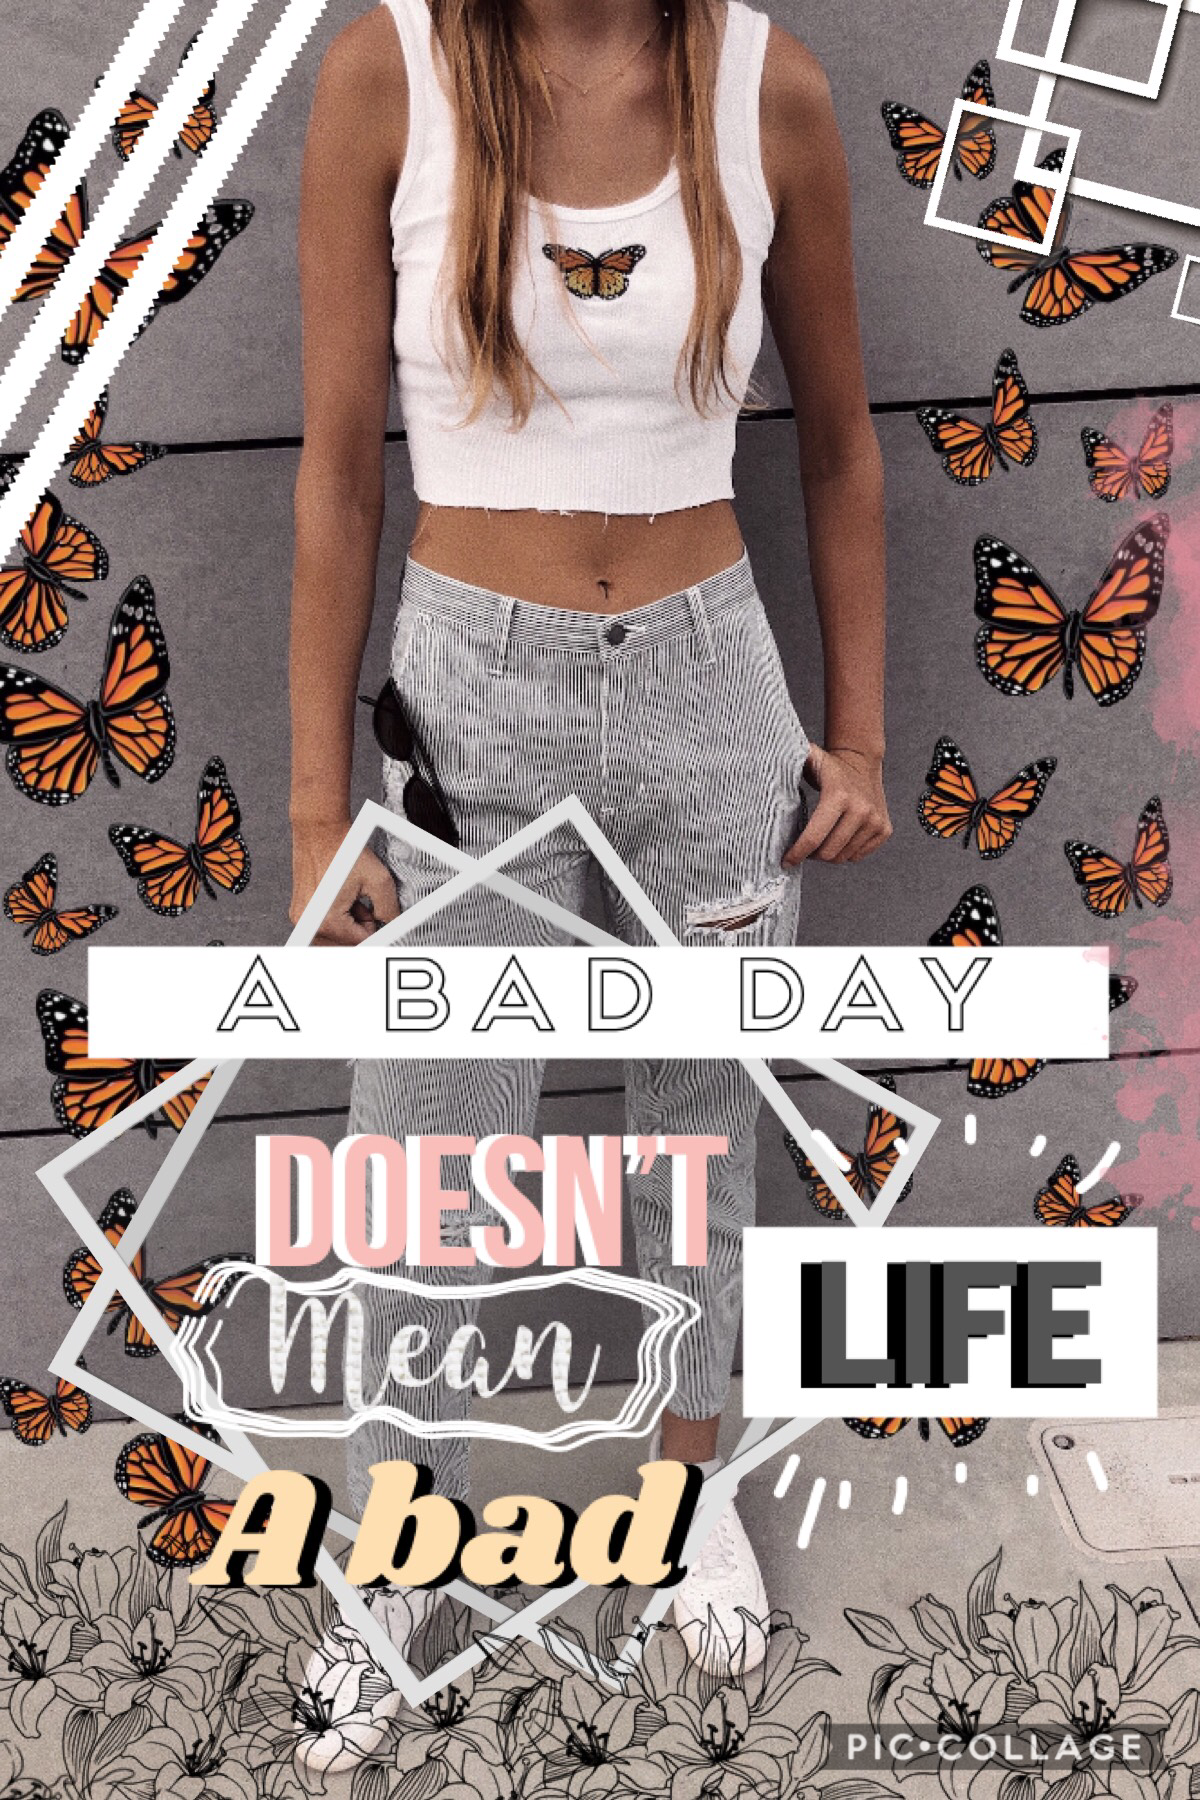 🦋Tap🦋 So as you can see I had a super bad day today lol just a reminder to keep it chill ❤️ everything will be ok